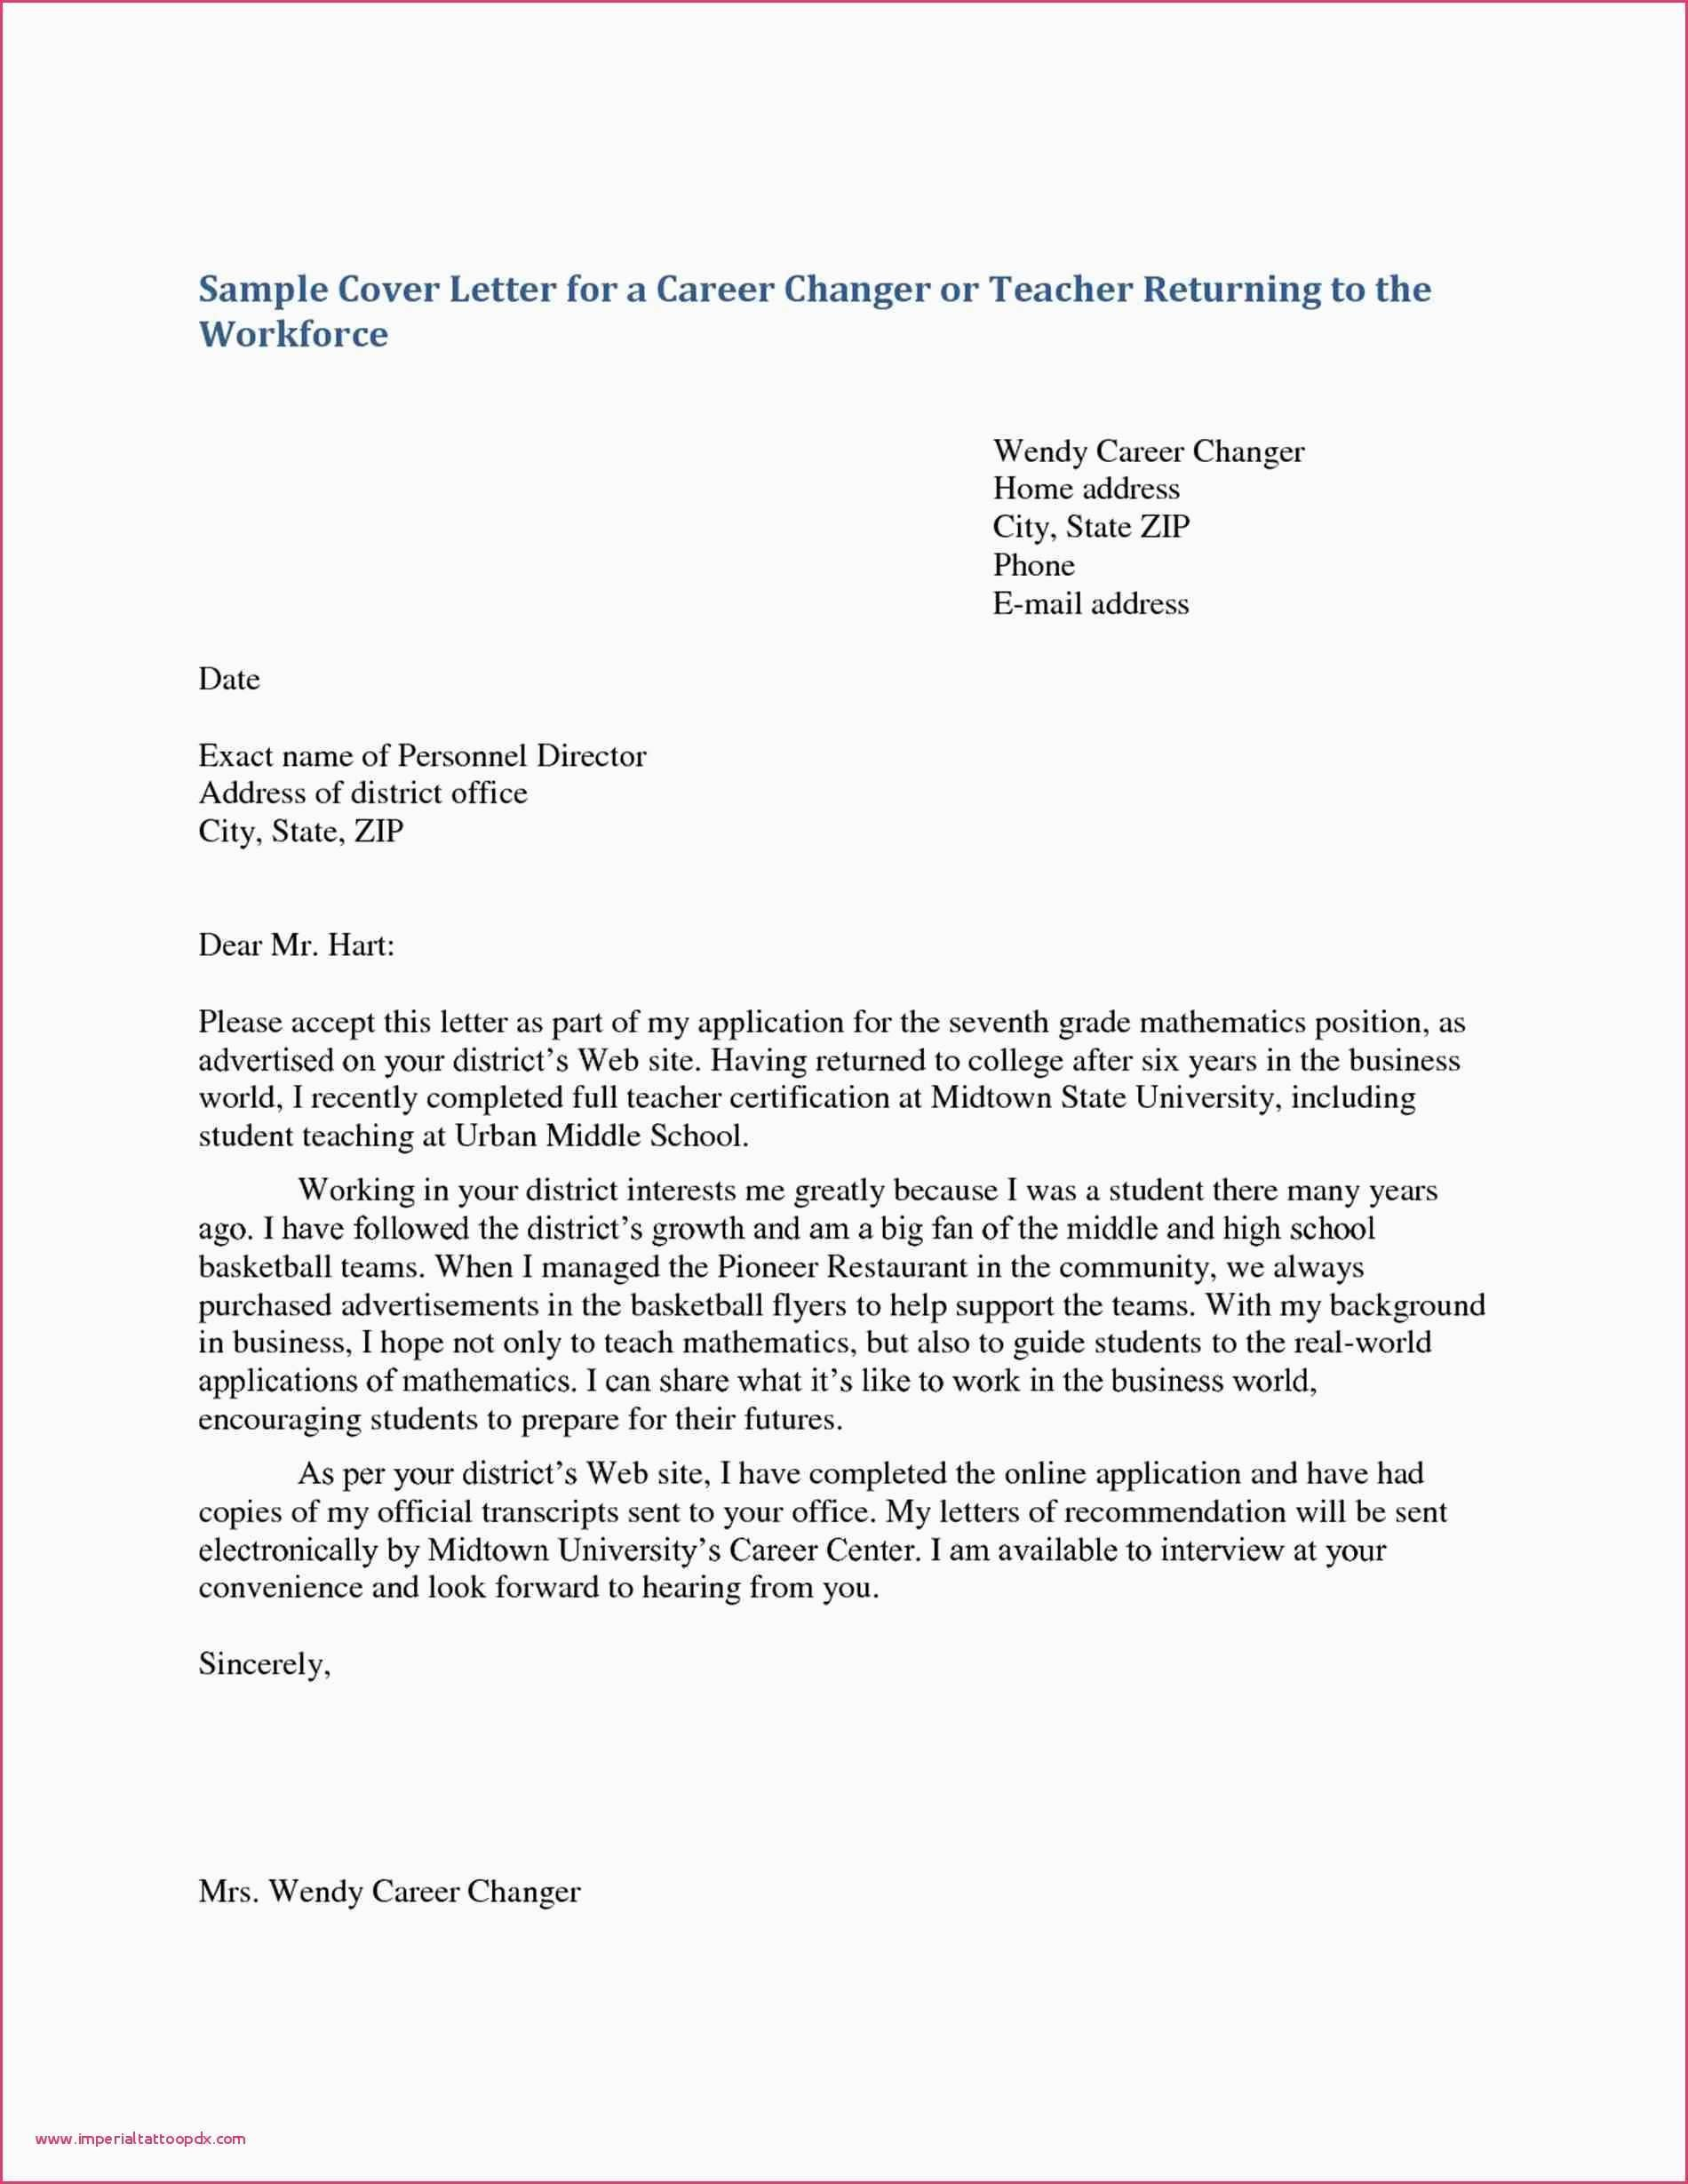 Teaching Job Covering Letter from i0.wp.com